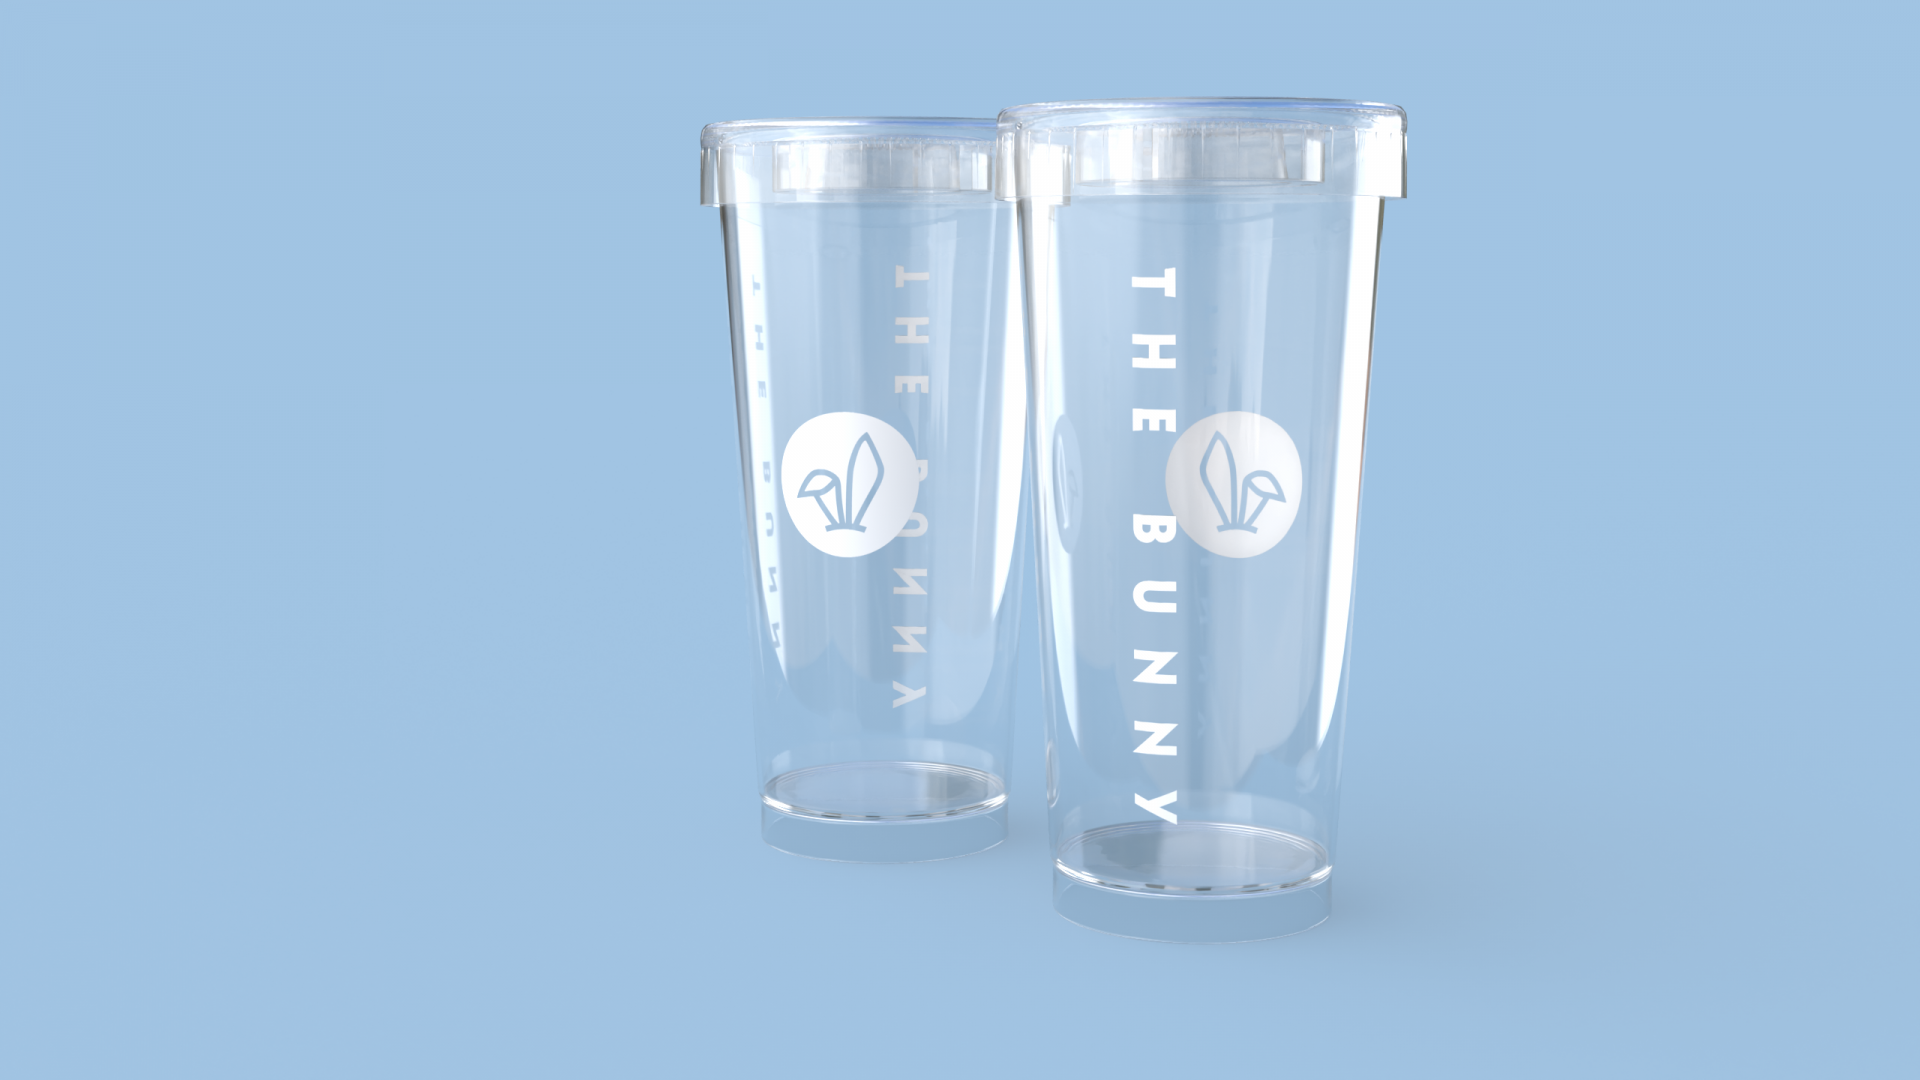 Brand identity design by Crate47. The Bunny bubble tea logo in white on clear plastic glasses against blue background.